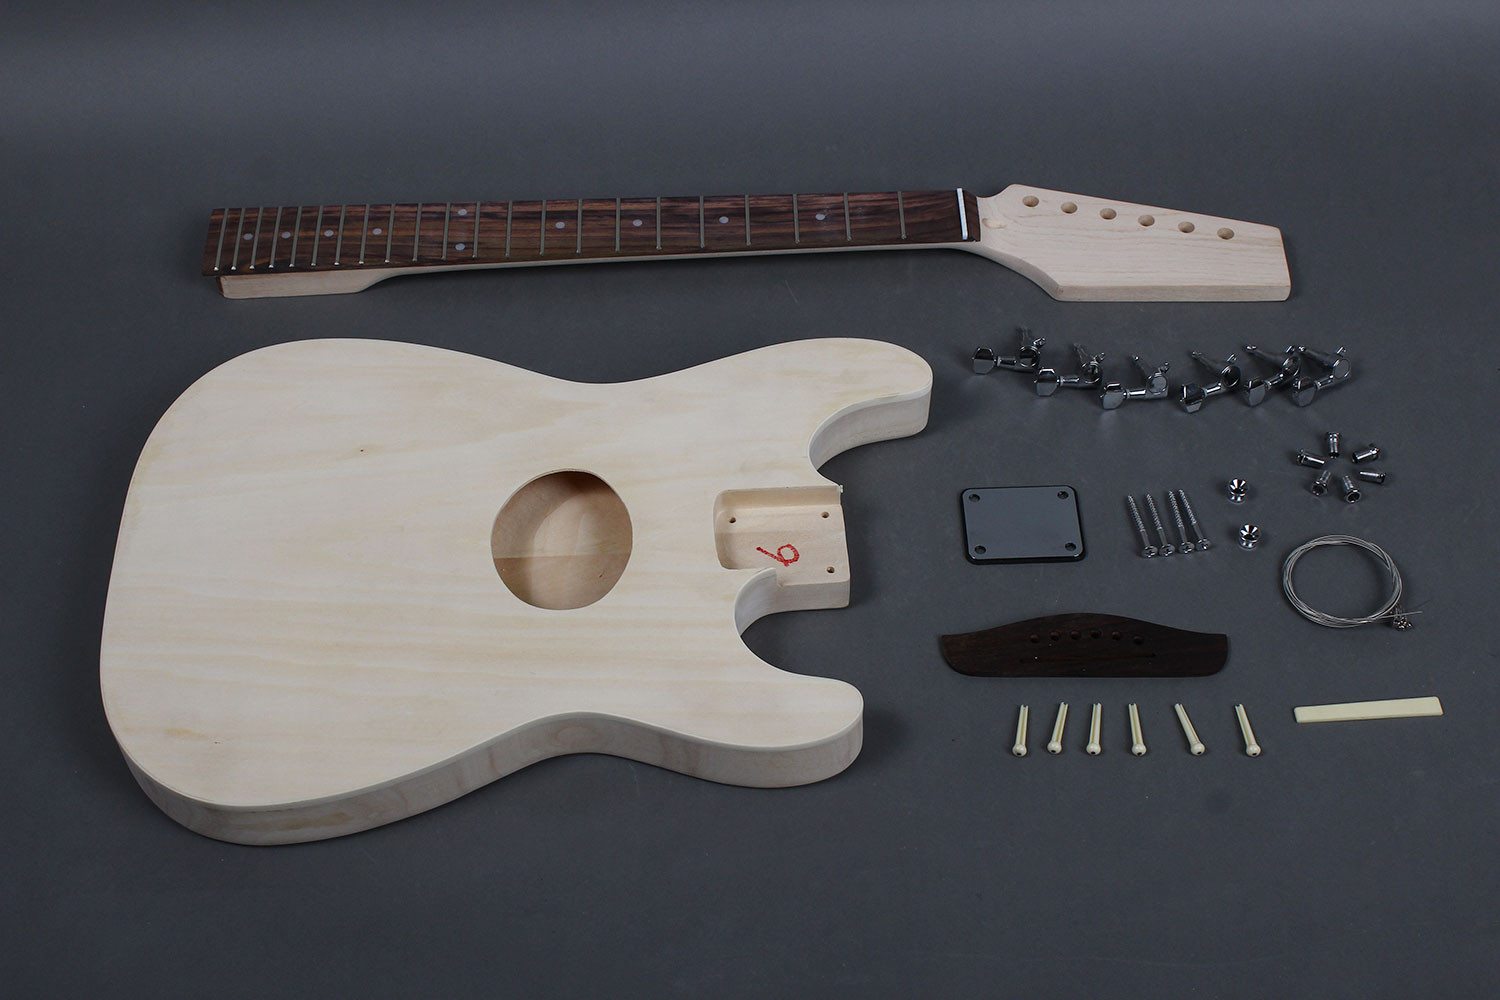 Best ideas about DIY Acoustic Guitar Kit . Save or Pin Special Acoustic Guitar DIY Kit Bolt on construction GK Now.